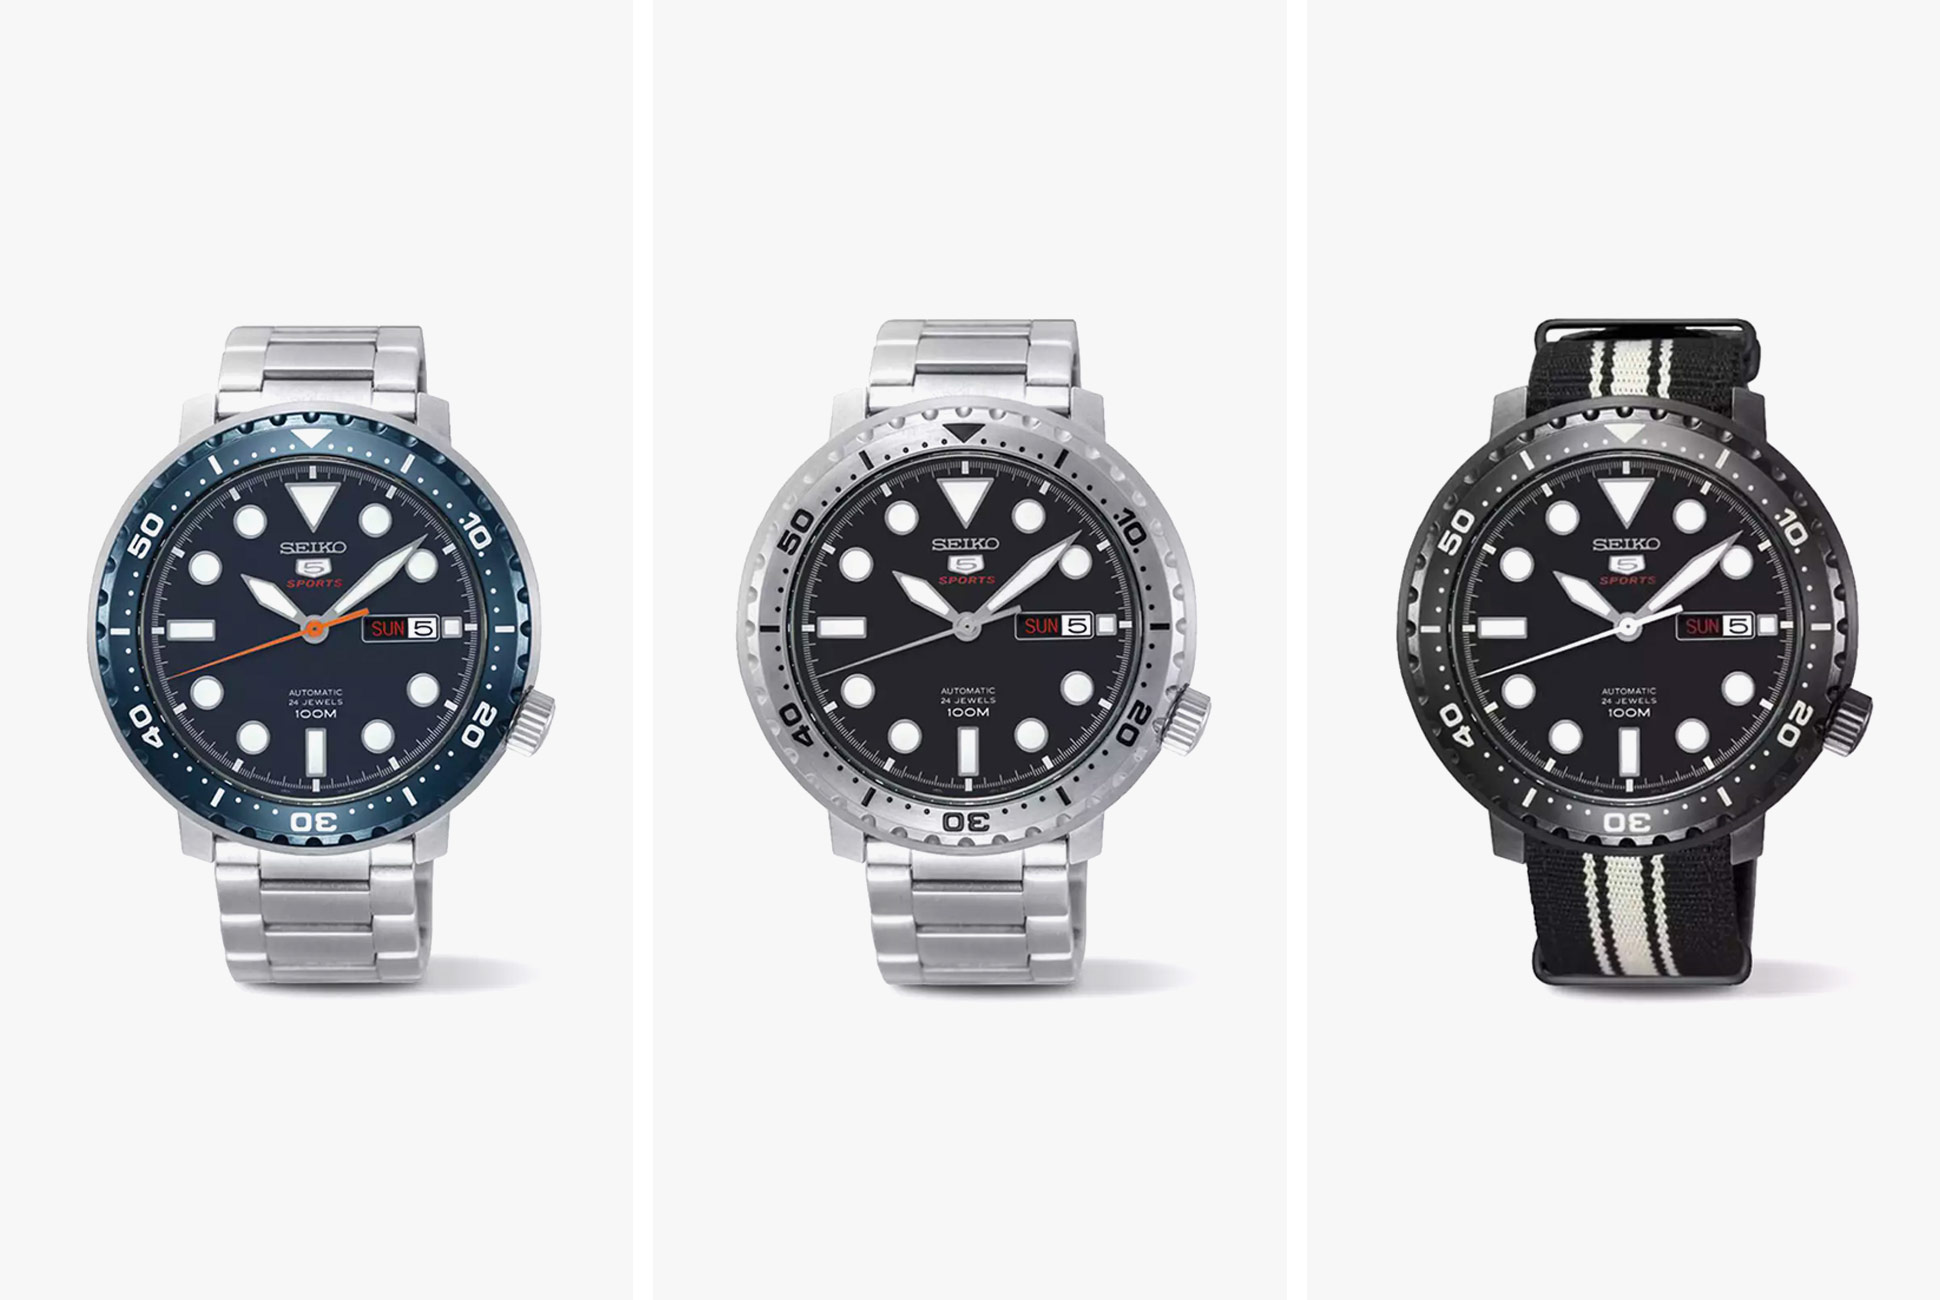 60a1549f5ef Save  210  The SRPC series of Seiko 5 models is based on a diver that  features the Seiko 4R36 24-jewel automatic movement with 41 hours of power  reserve